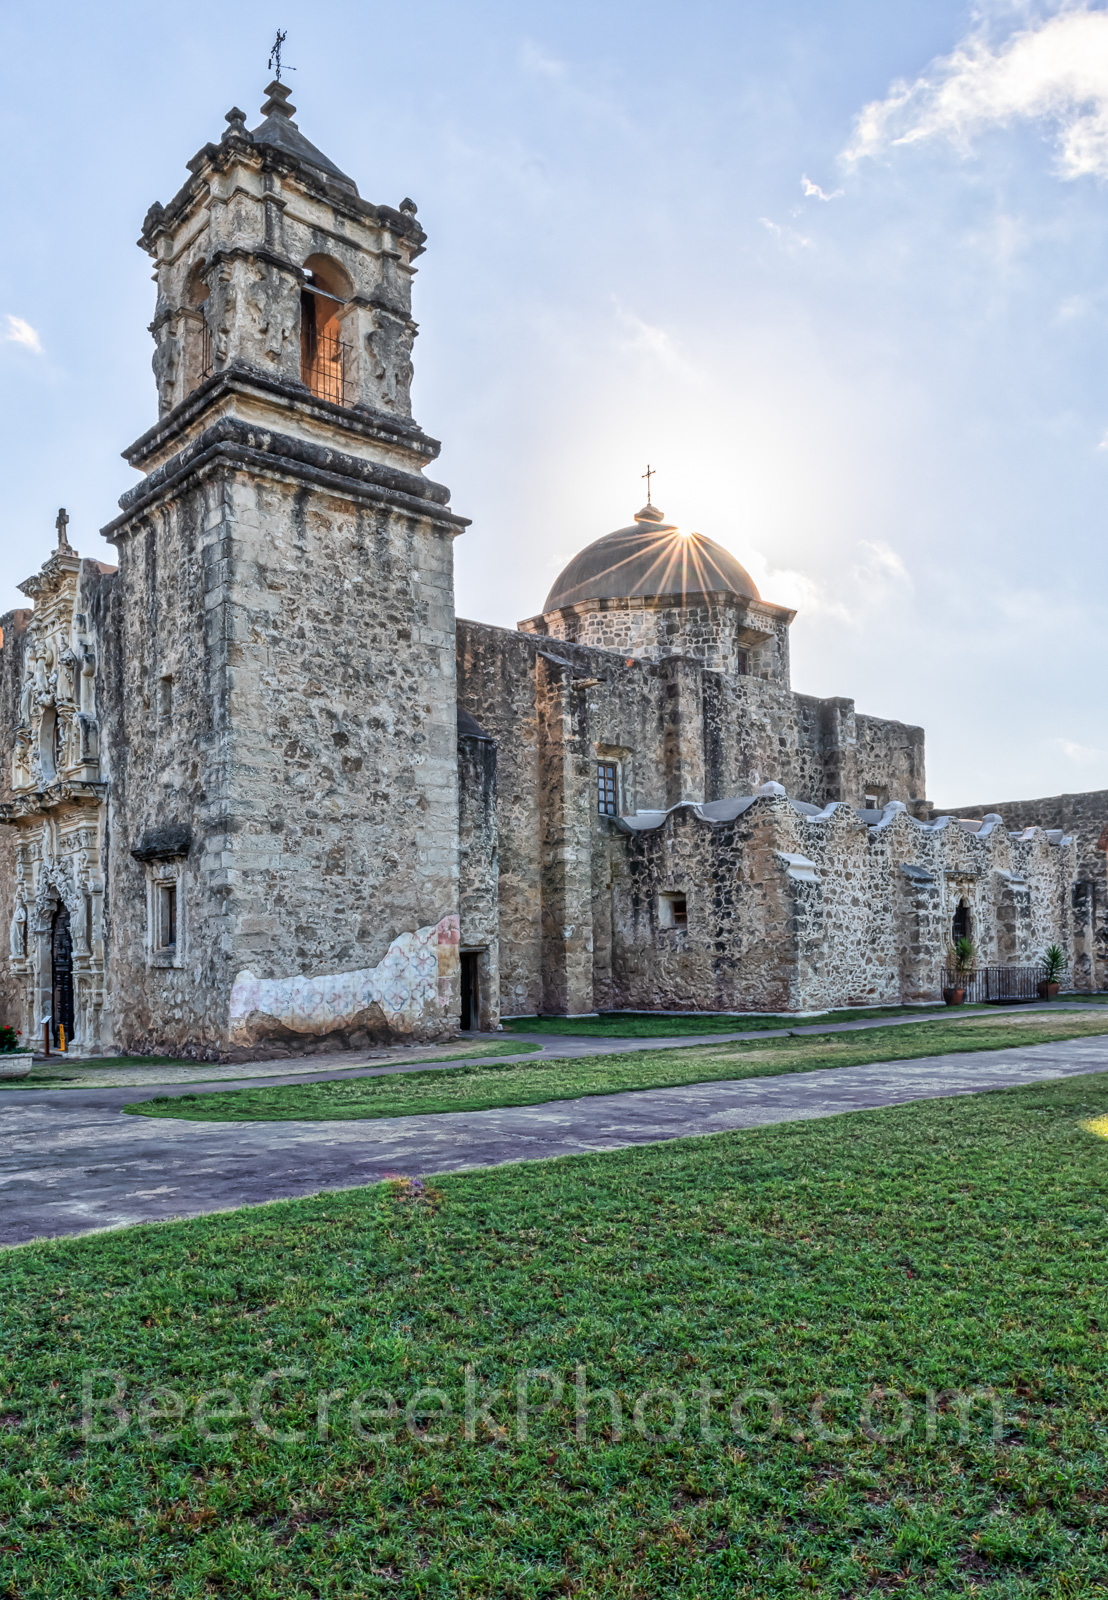 Mission San Jose, San Antonio Missions National Historical Park, church, vertical, Coahuiltecan tribe, indians, San Antonio, spanish missions, landmark, historic, color, downtown, texians, mexicans, t, photo